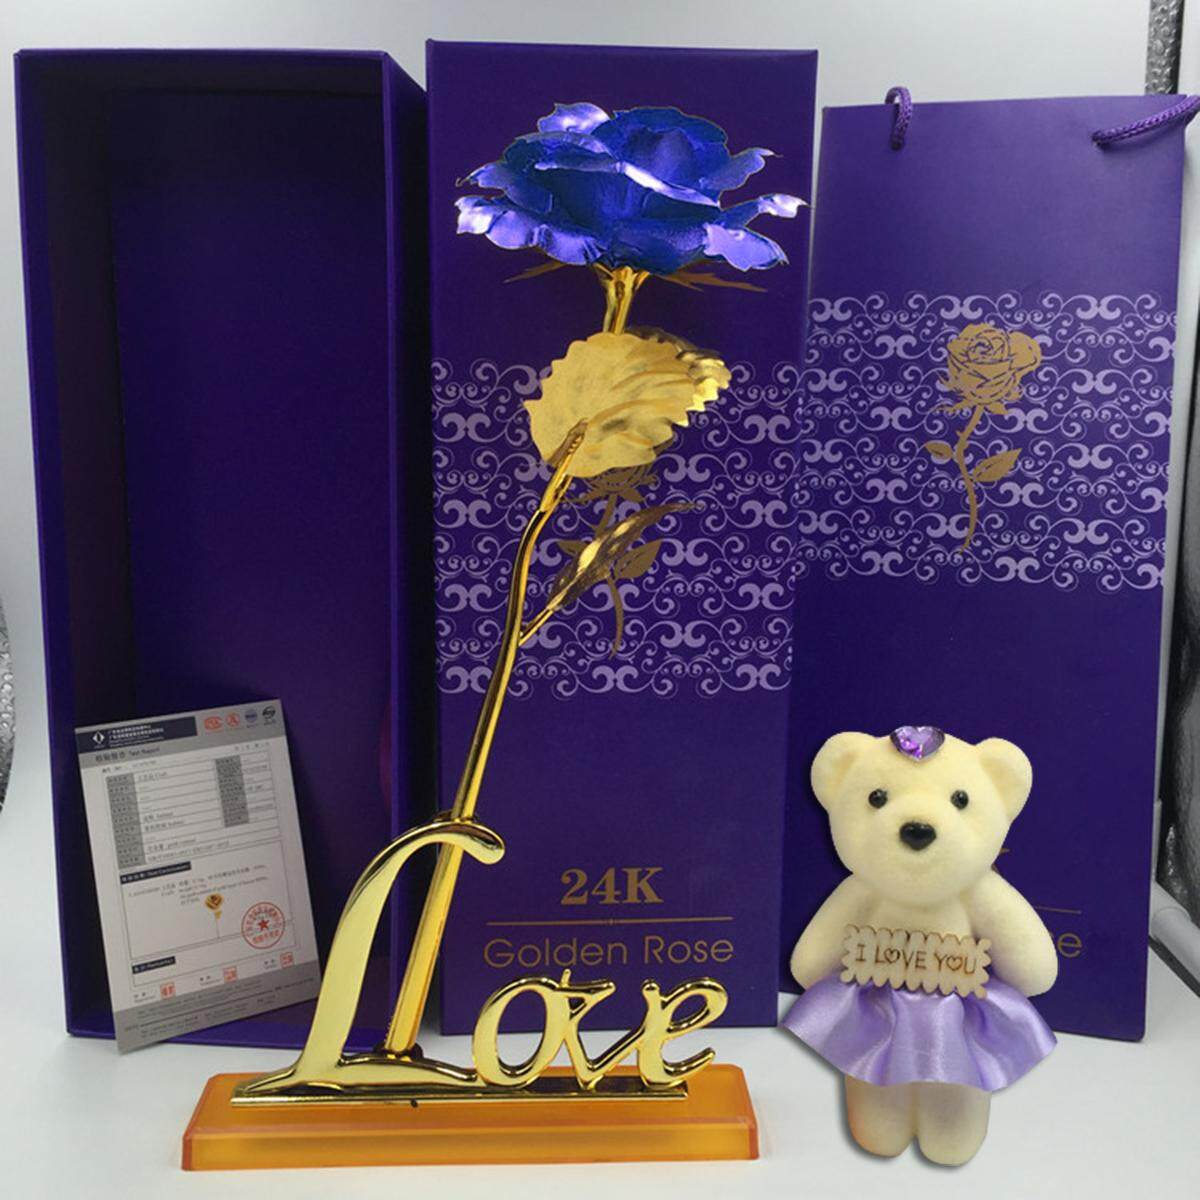 Xo 24k Gold Plated Rose Flower Valentines Day Birthday Gifts + Cute Teddy Bear [with Base] By Moonbeam.